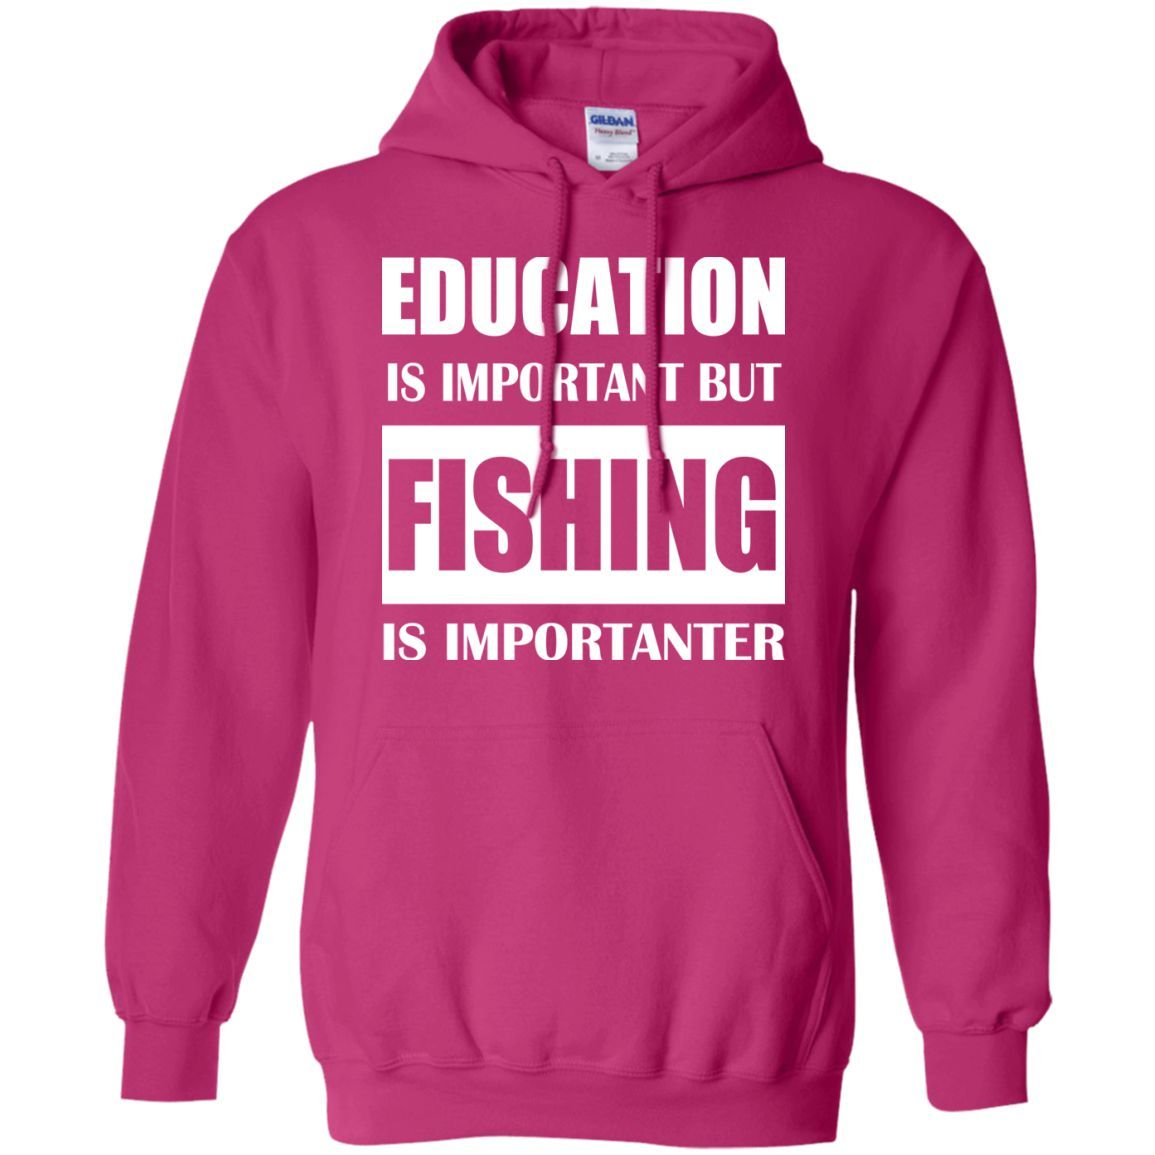 Education Is Important But Fishing Is Importanter Hoodies